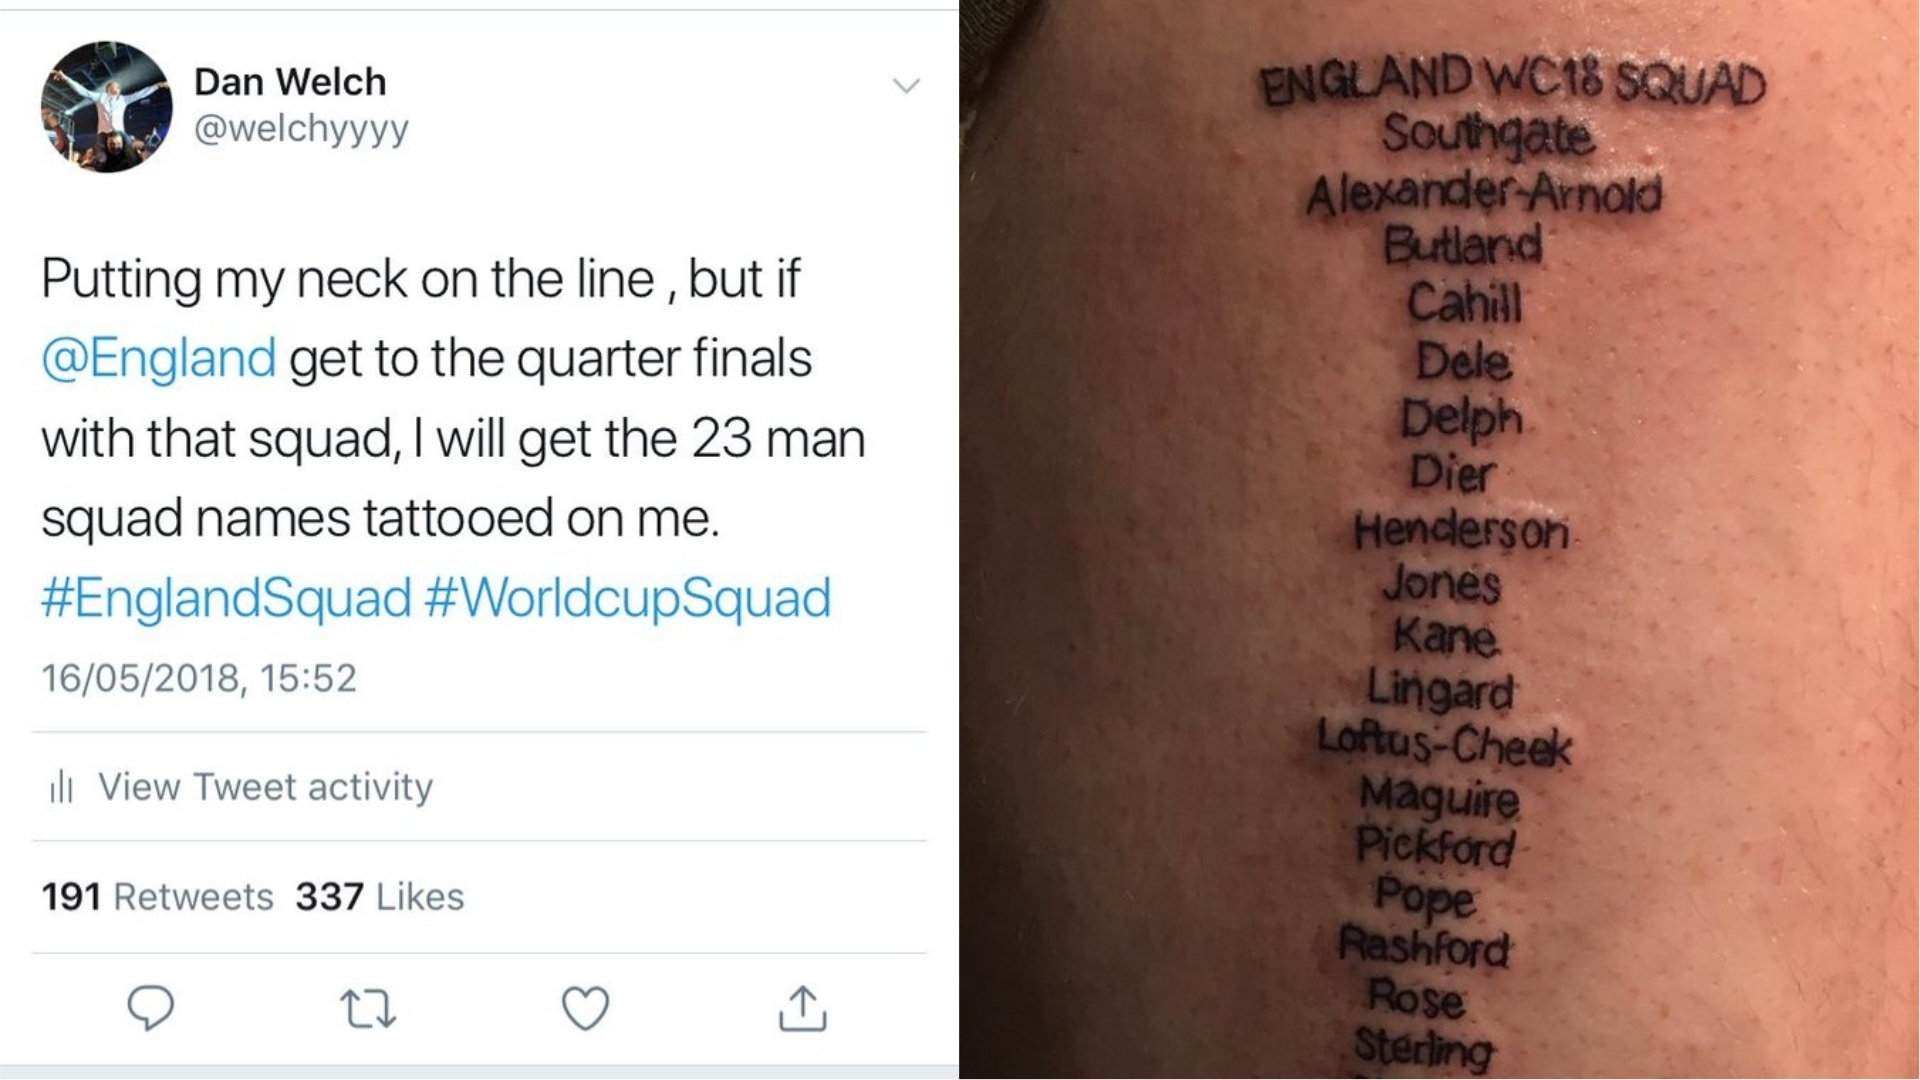 A tattoo of the England squad at the 2018 World Cup